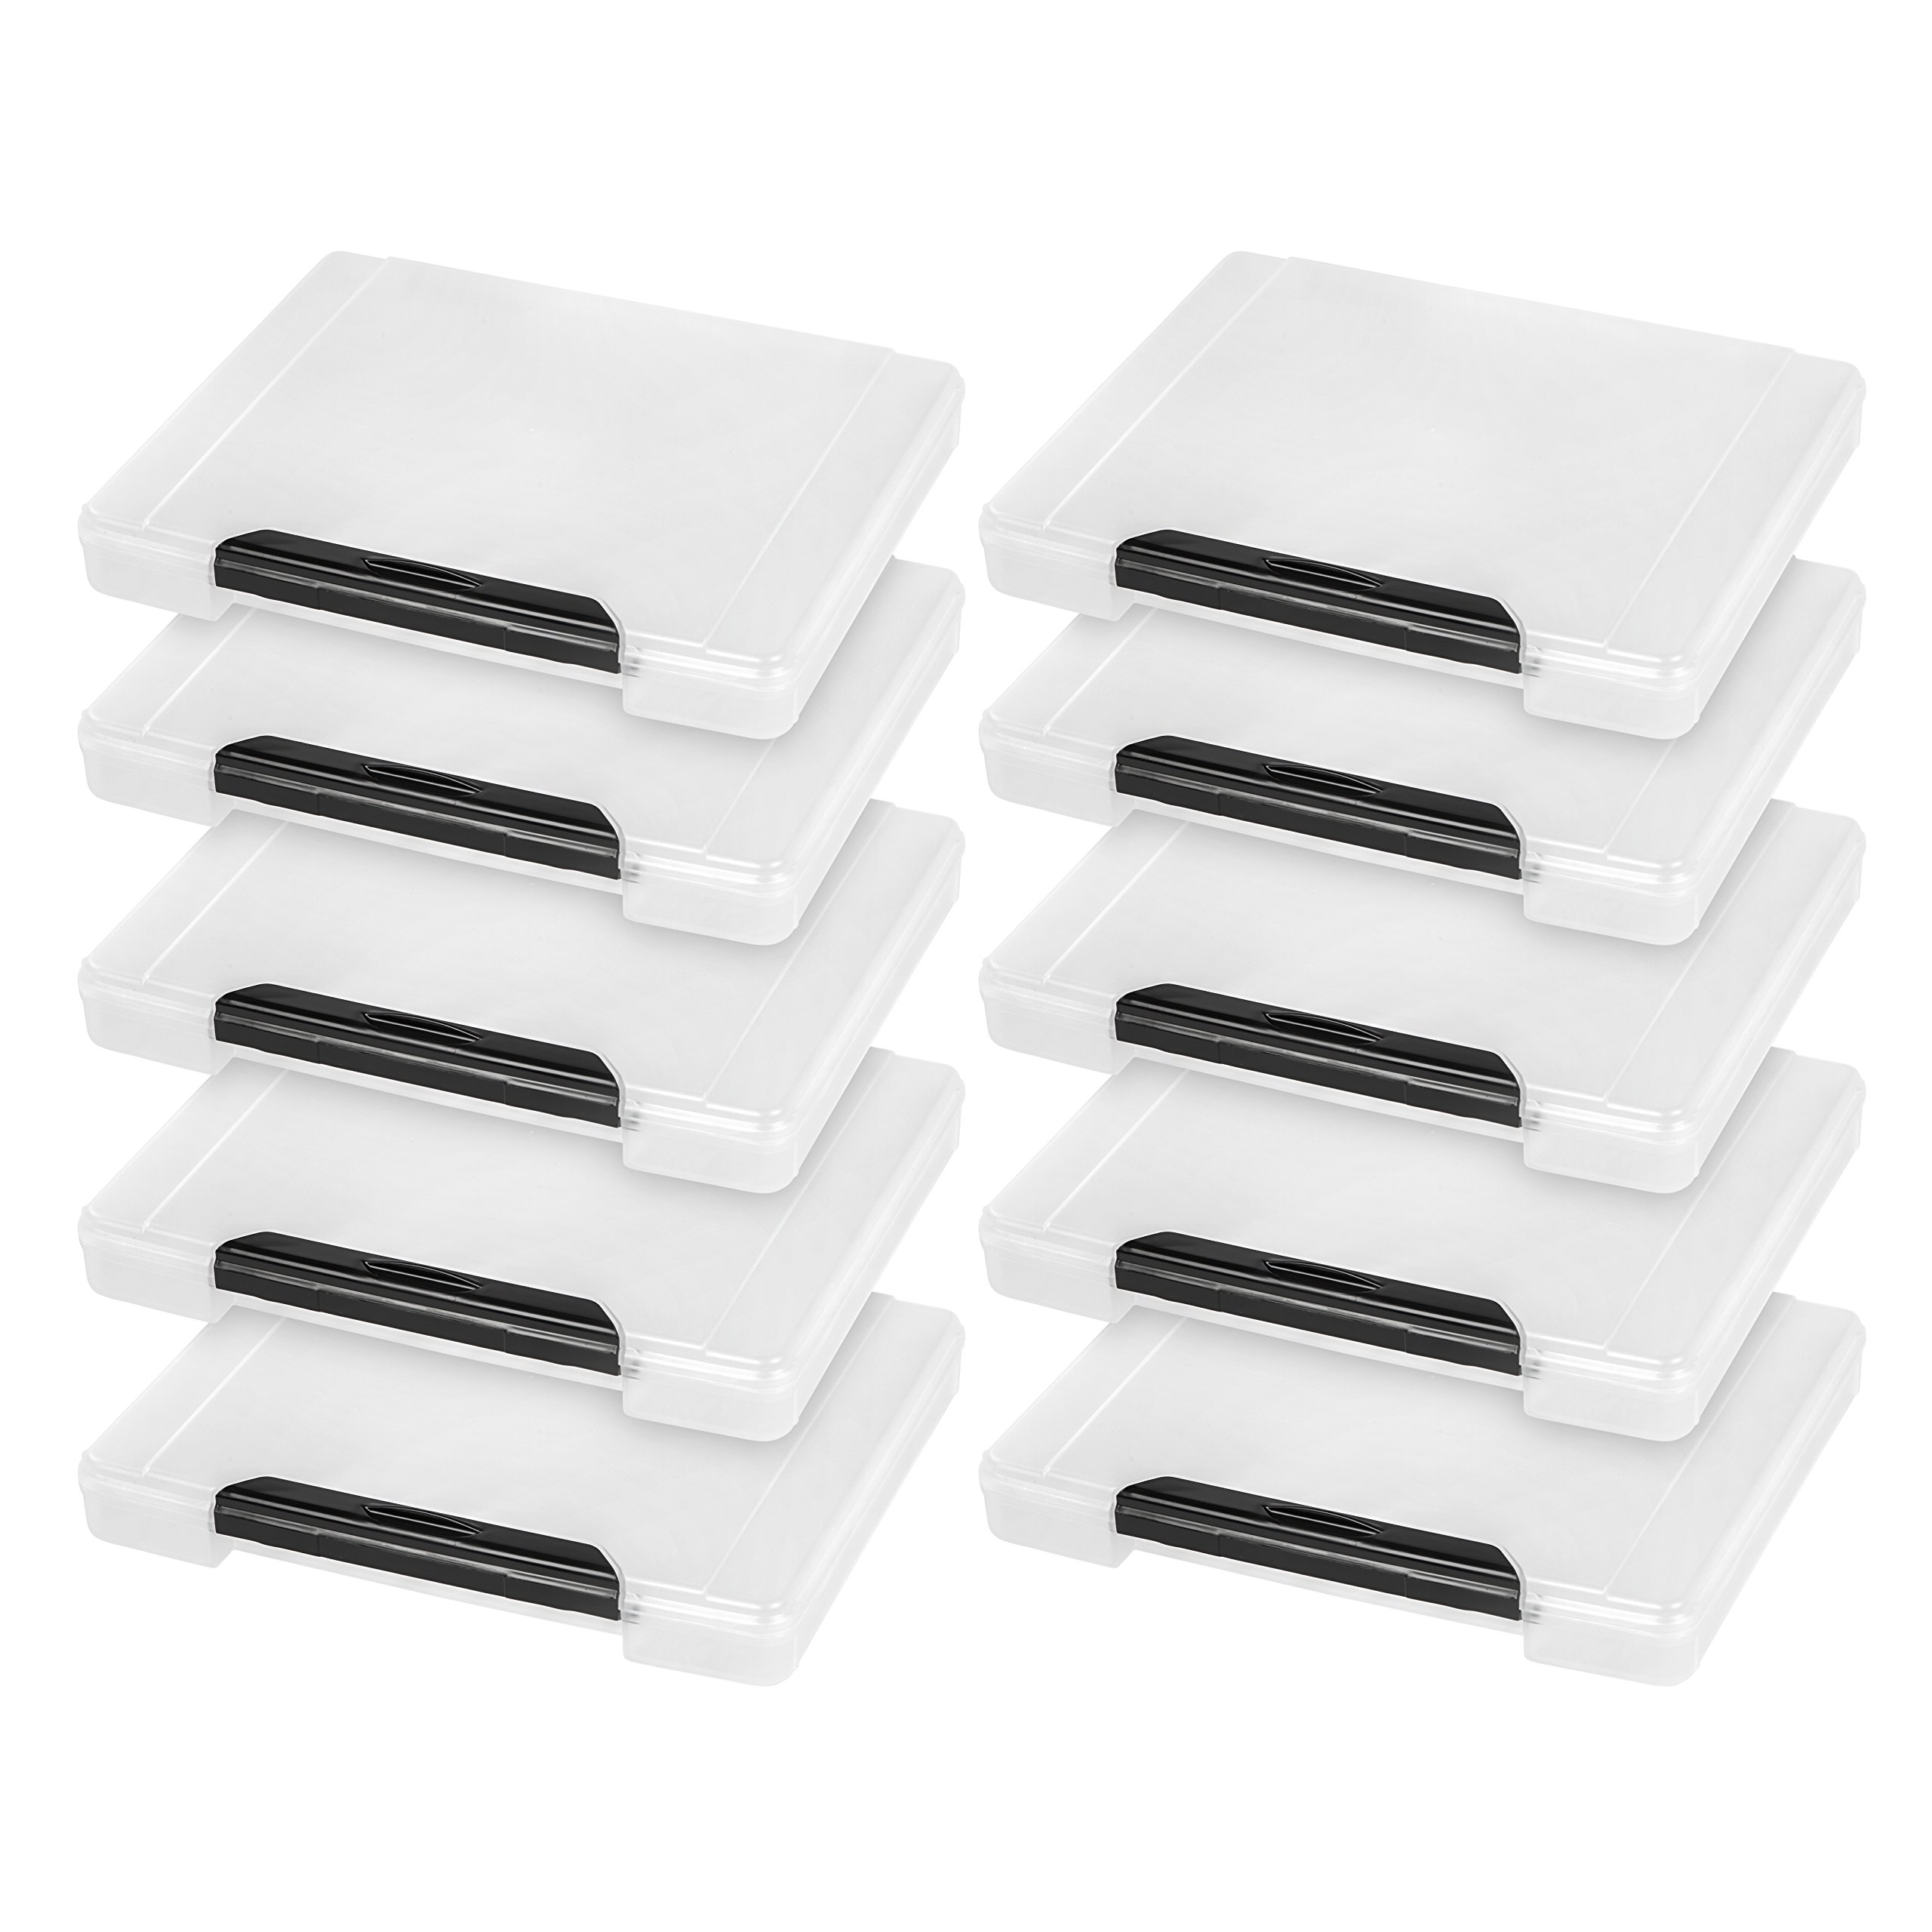 IRIS Portable Project Case with Buckle, 10 Pack, Clear by IRIS USA, Inc.